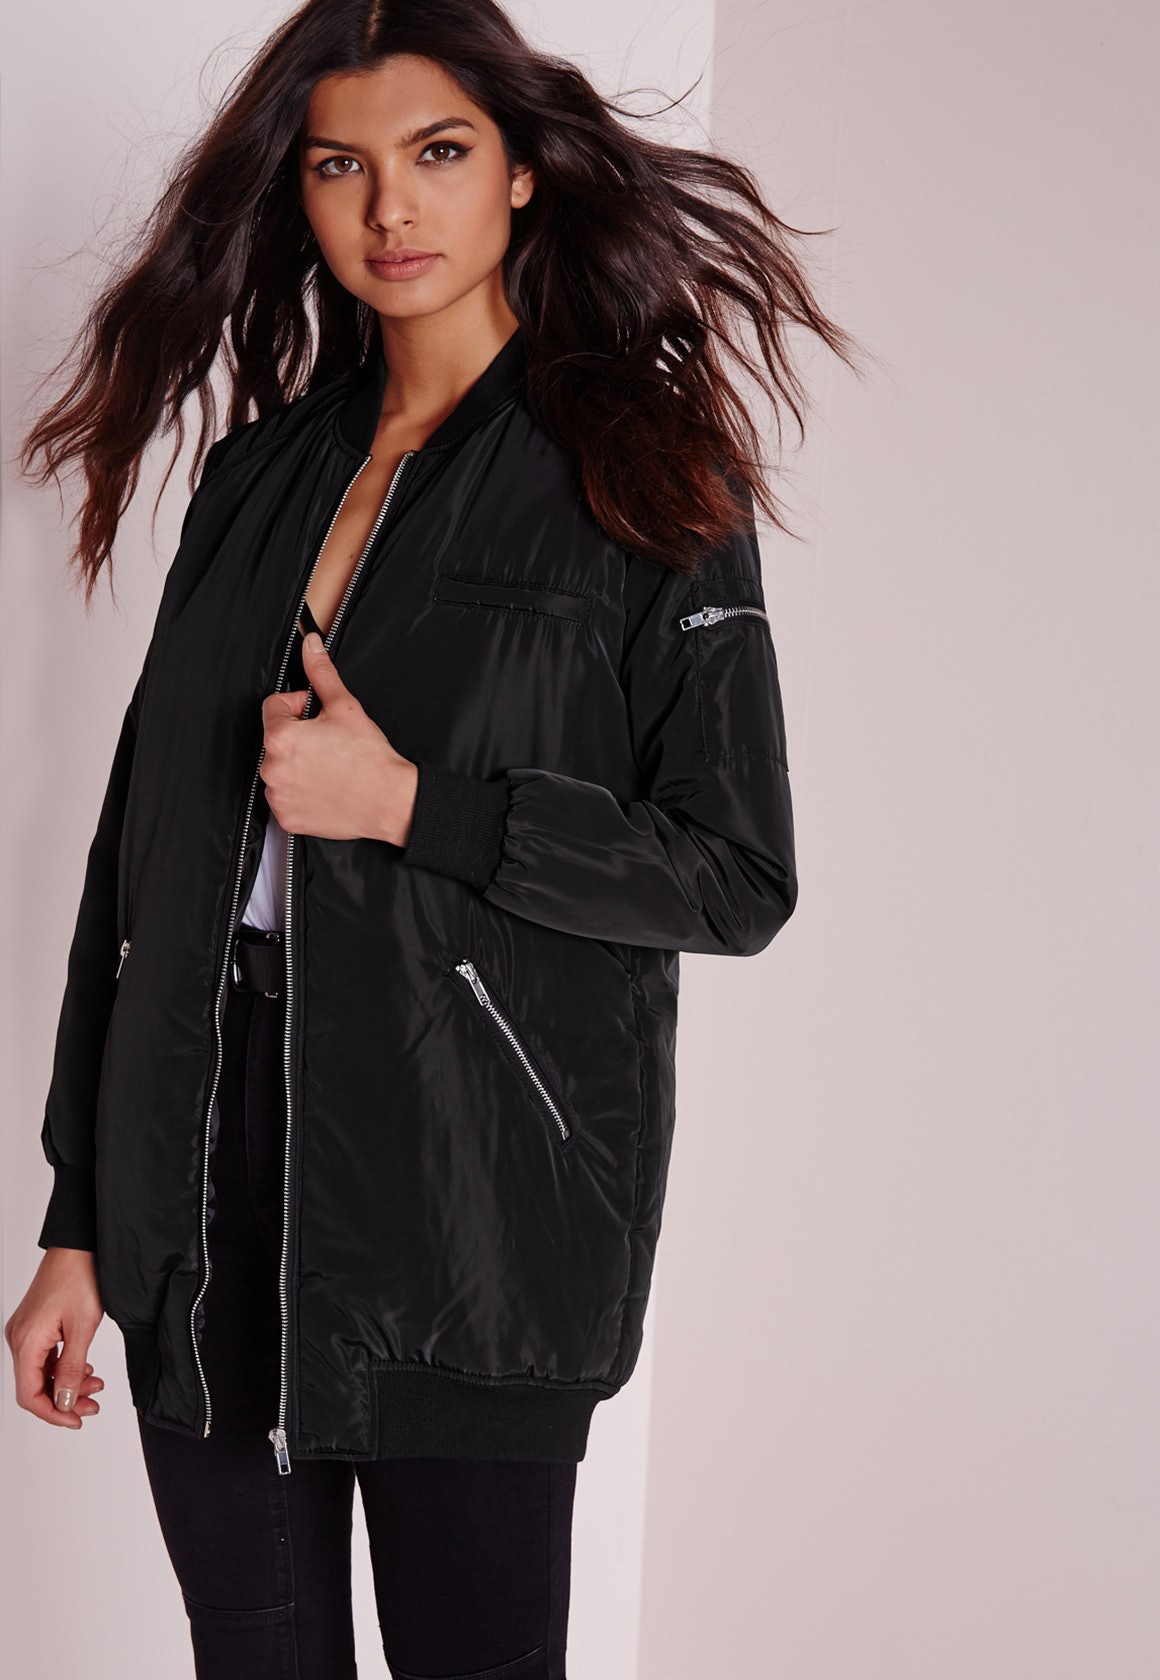 ee8a2ea5e Where To Buy Kylie Jenner's Quilted Bomber Jacket From Snapchat — PHOTOS